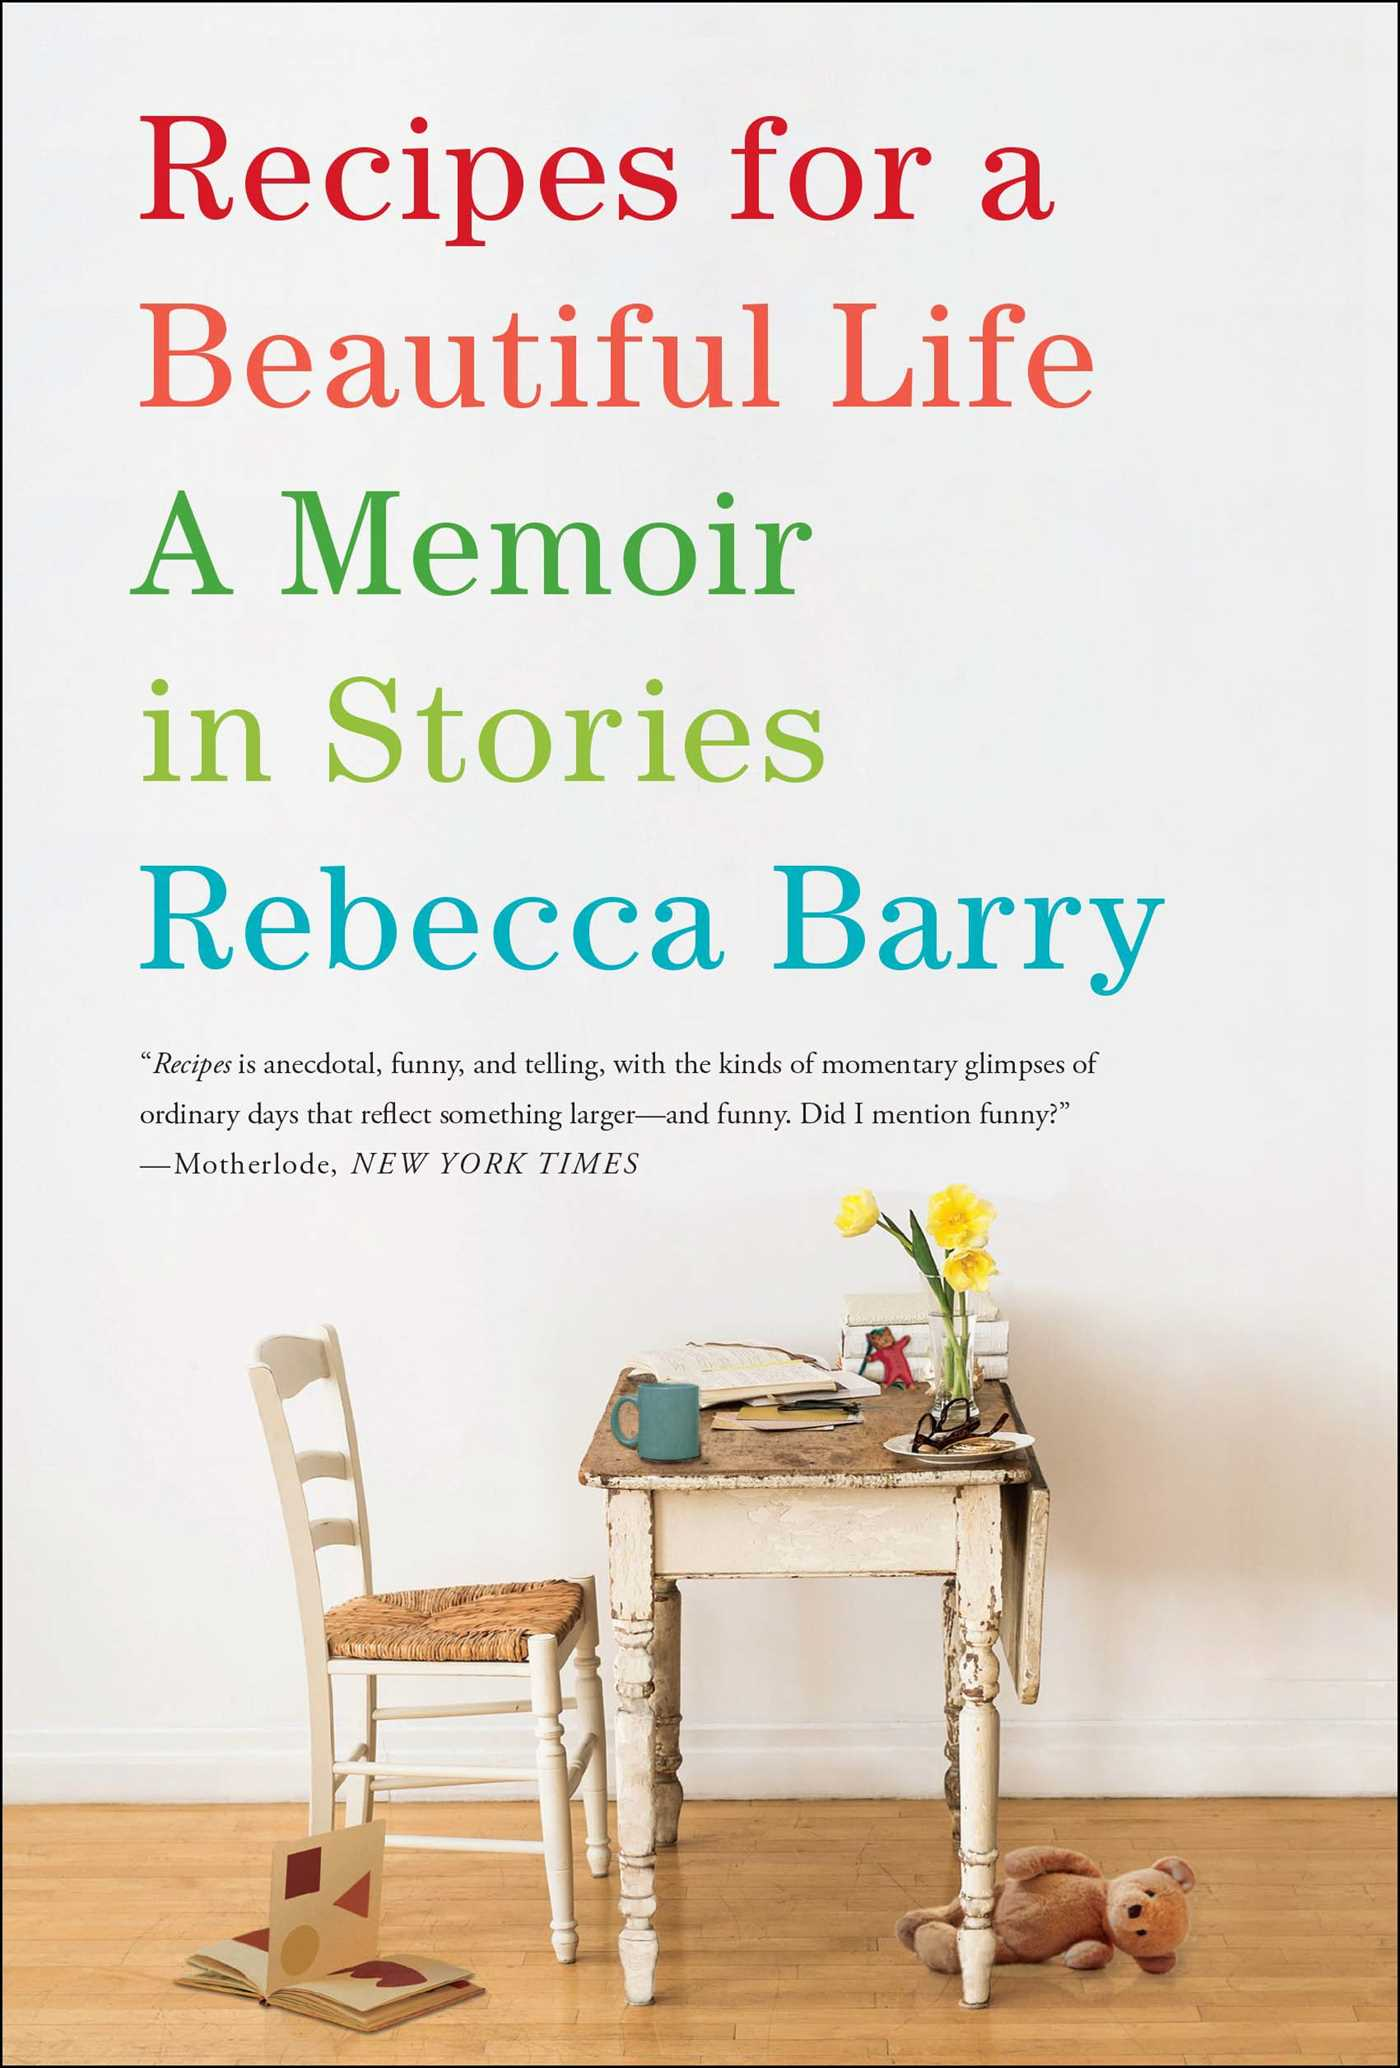 Recipes for a beautiful life 9781416593379 hr